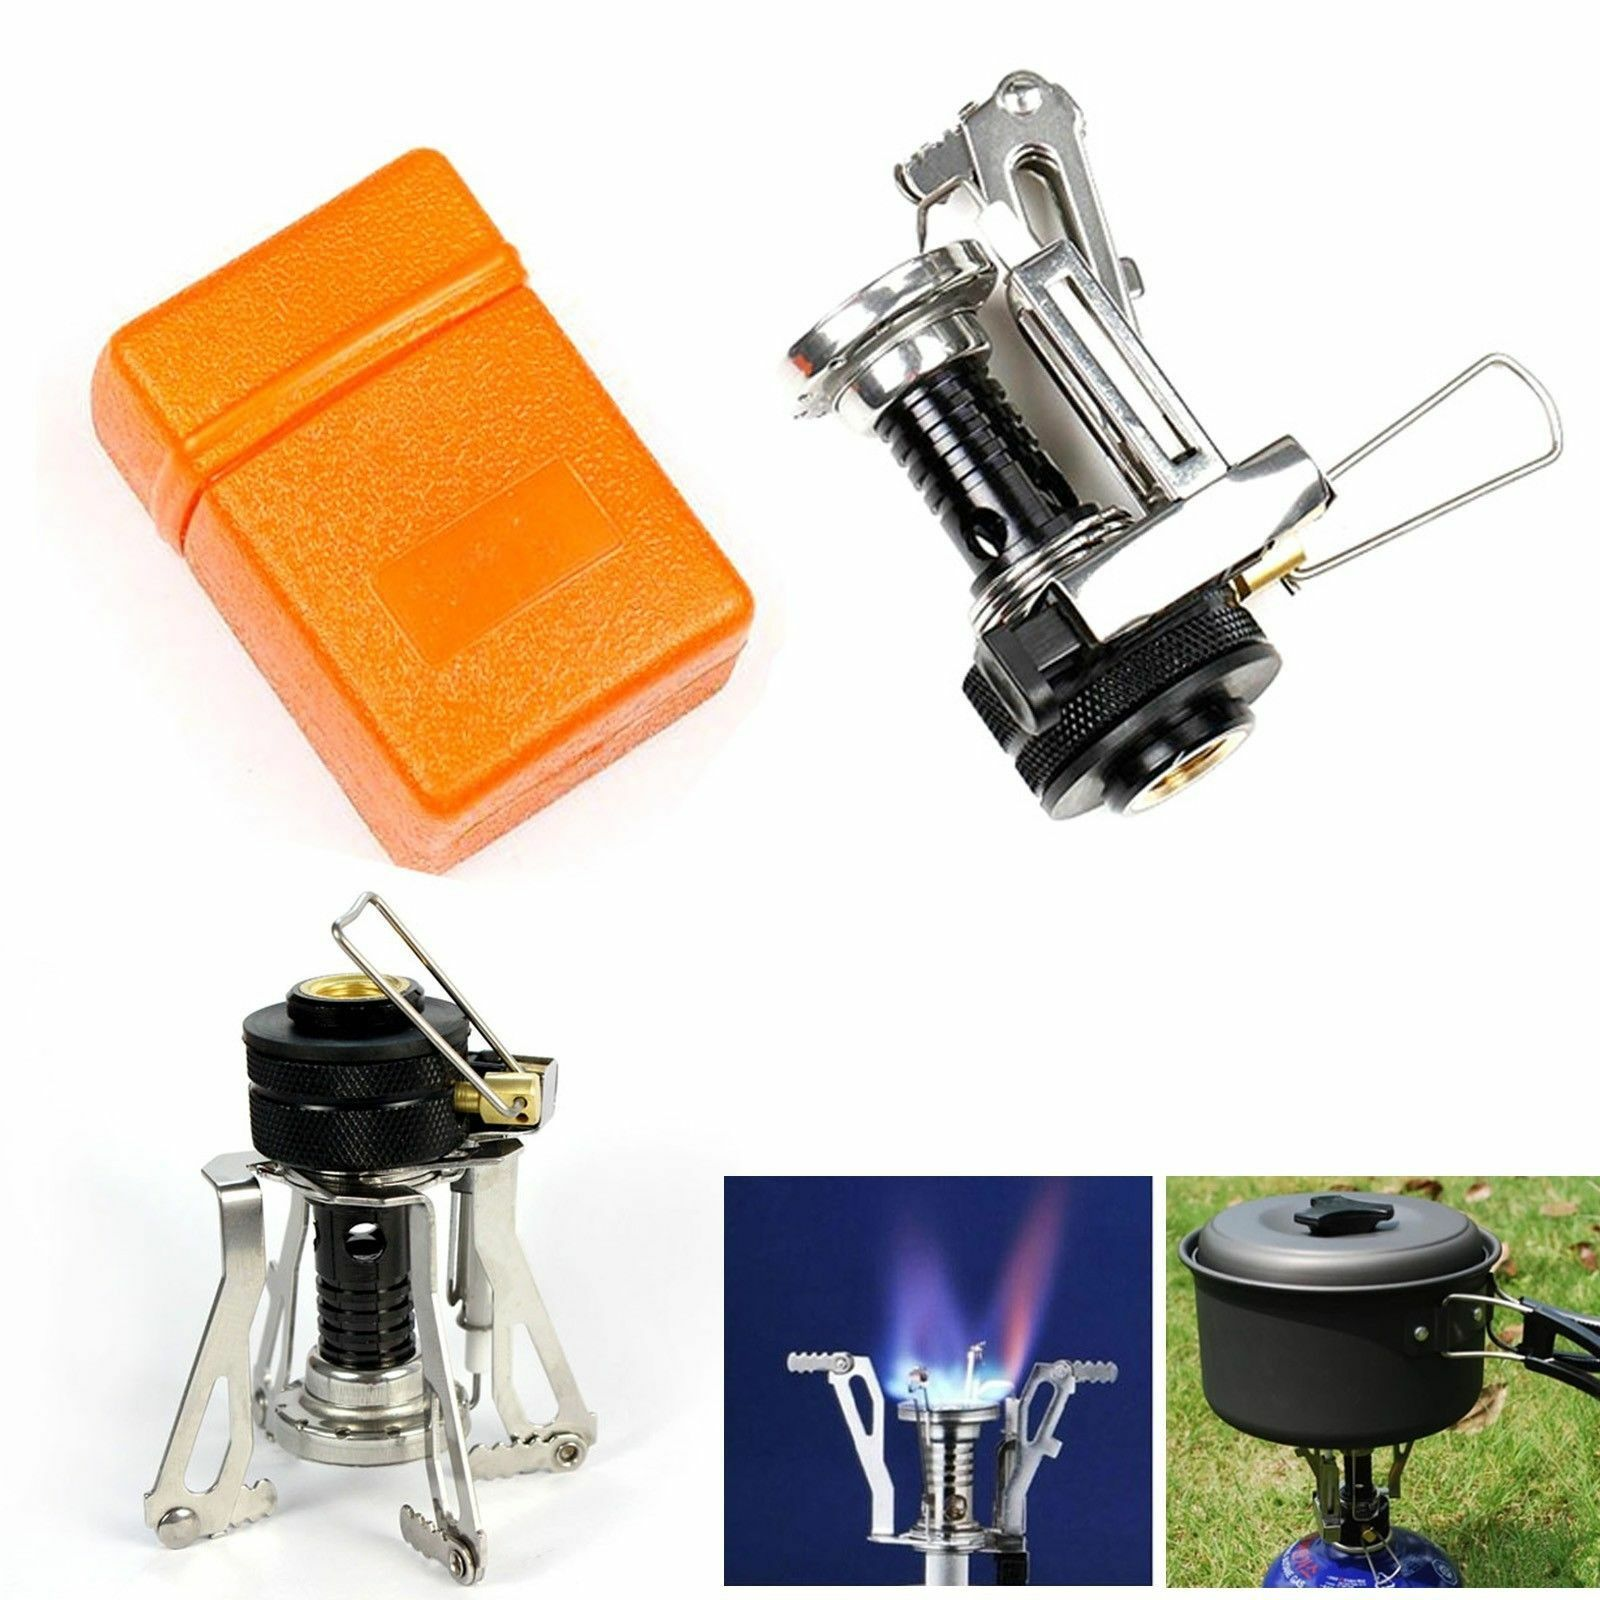 Mini Stove: USA Outdoor Ultralight Backpacking Canister Camp Stove